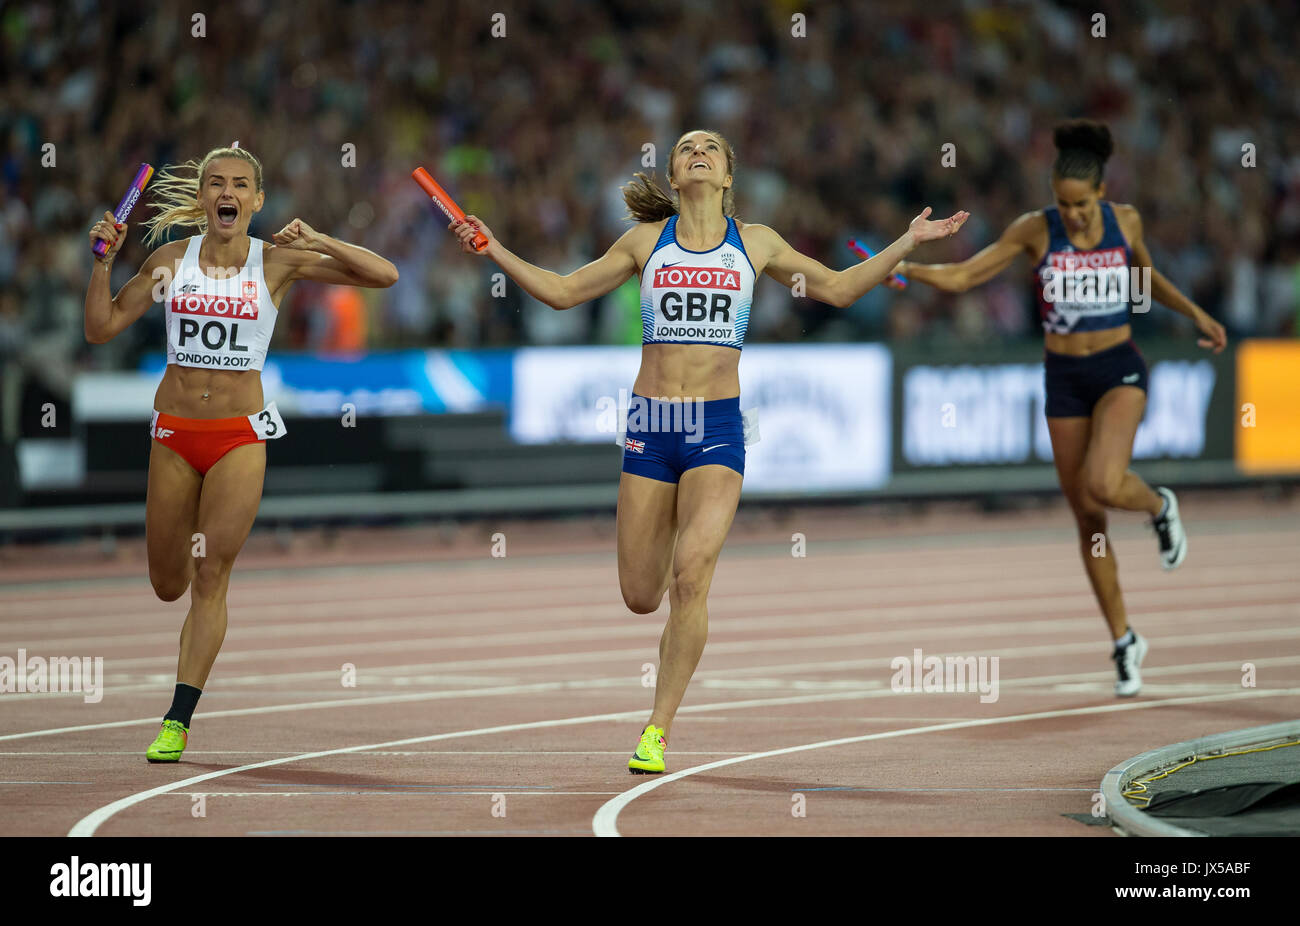 London, UK. 13th Aug, 2017. during the Final Day of the IAAF World Athletics Championships (Day 10) at the Olympic Park, London, England on 13 August 2017. Photo by Andy Rowland/PRiME Media Images. Credit: Andrew Rowland/Alamy Live News - Stock Image